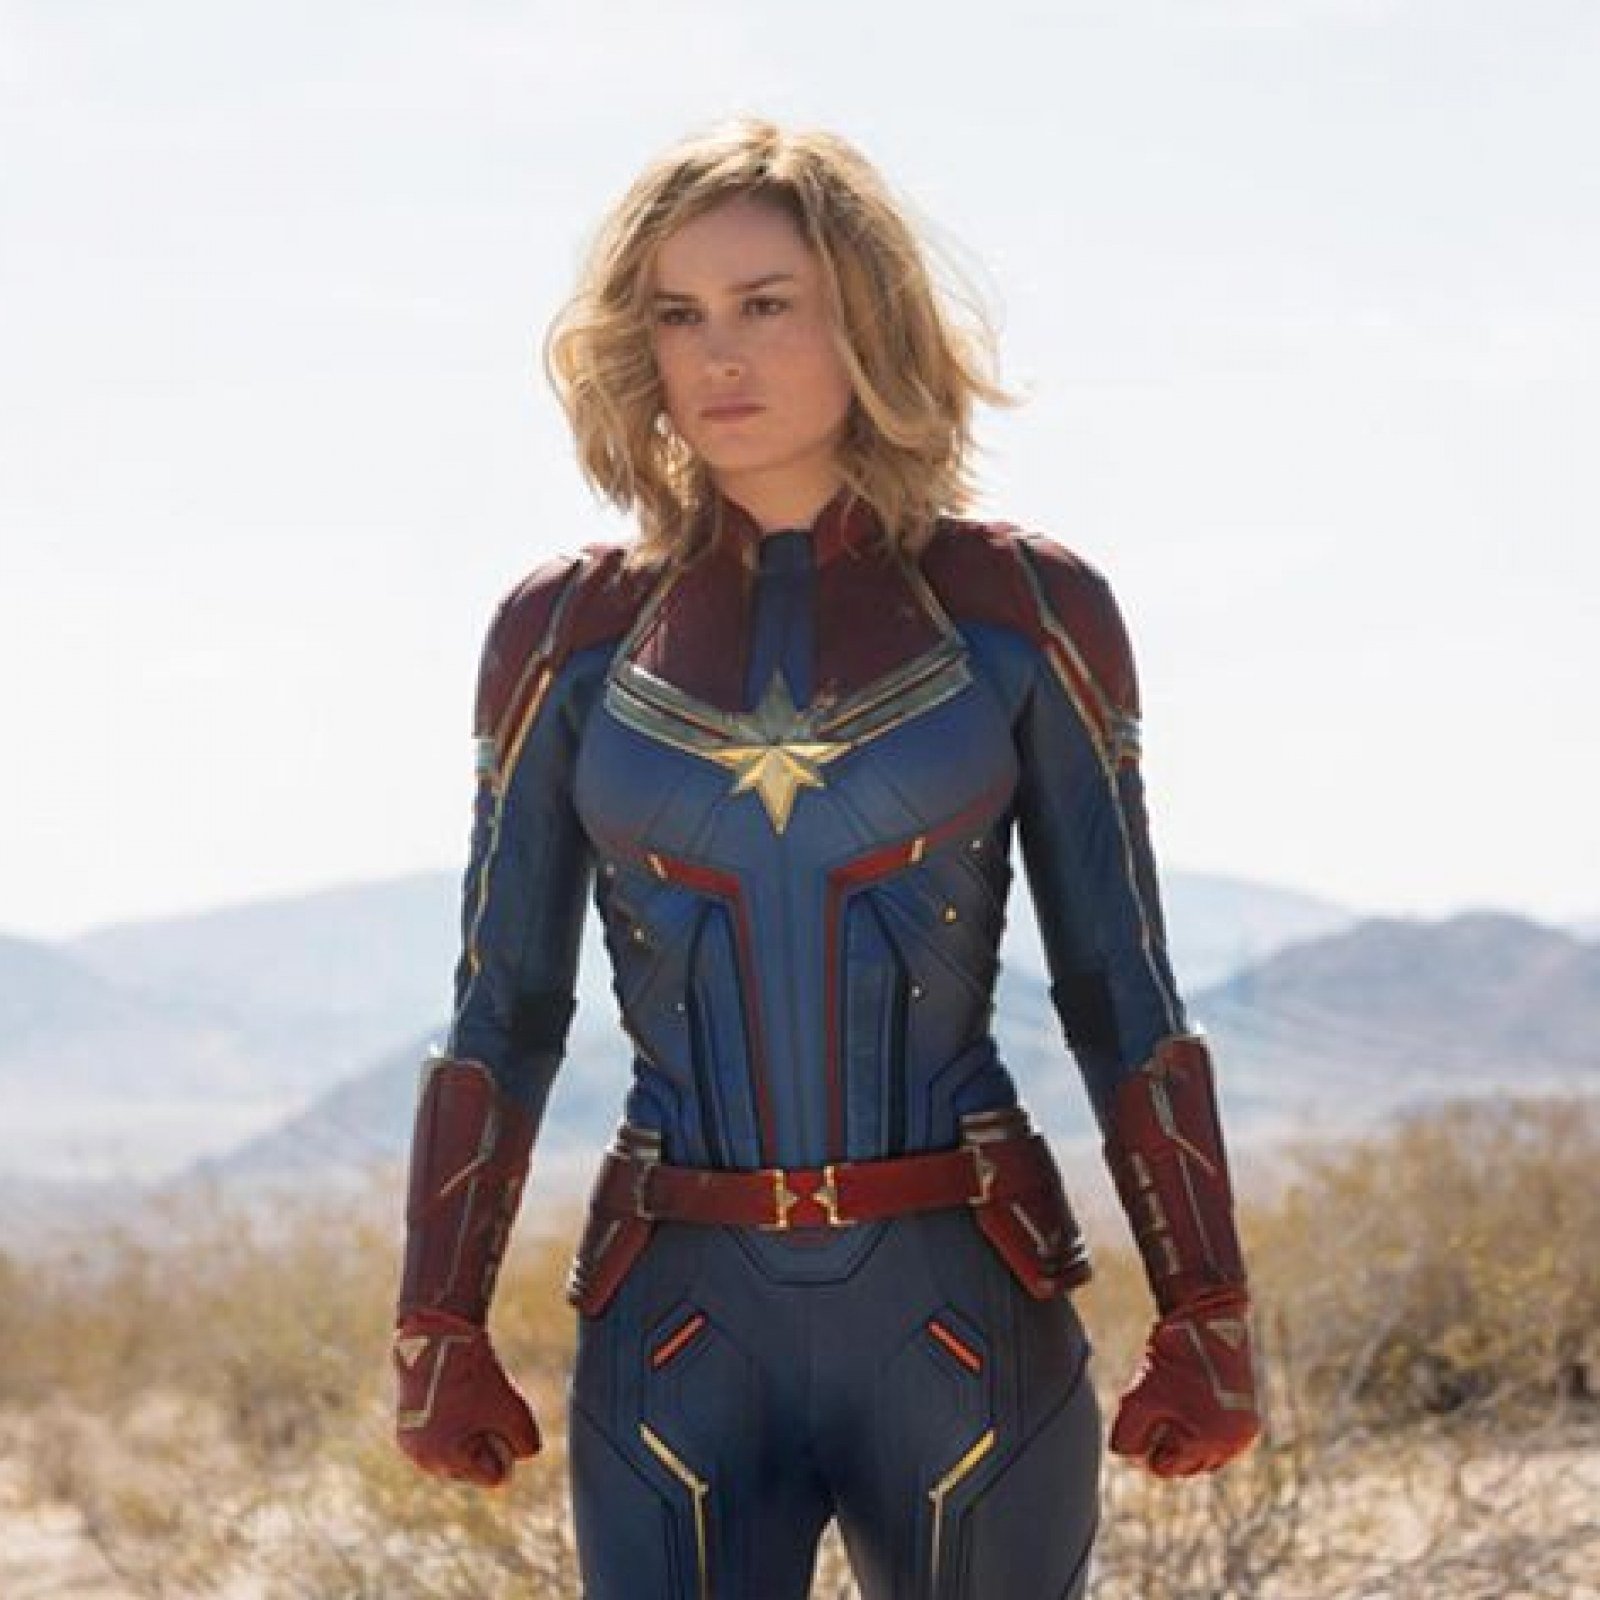 Captain Marvel Latest Superhero Movie To Promote Air Force In Trend Stretching Back To Comics About 3% of these are tv & movie costumes, 0% are women's trousers & pants, and 0% are zentai / catsuit. captain marvel latest superhero movie